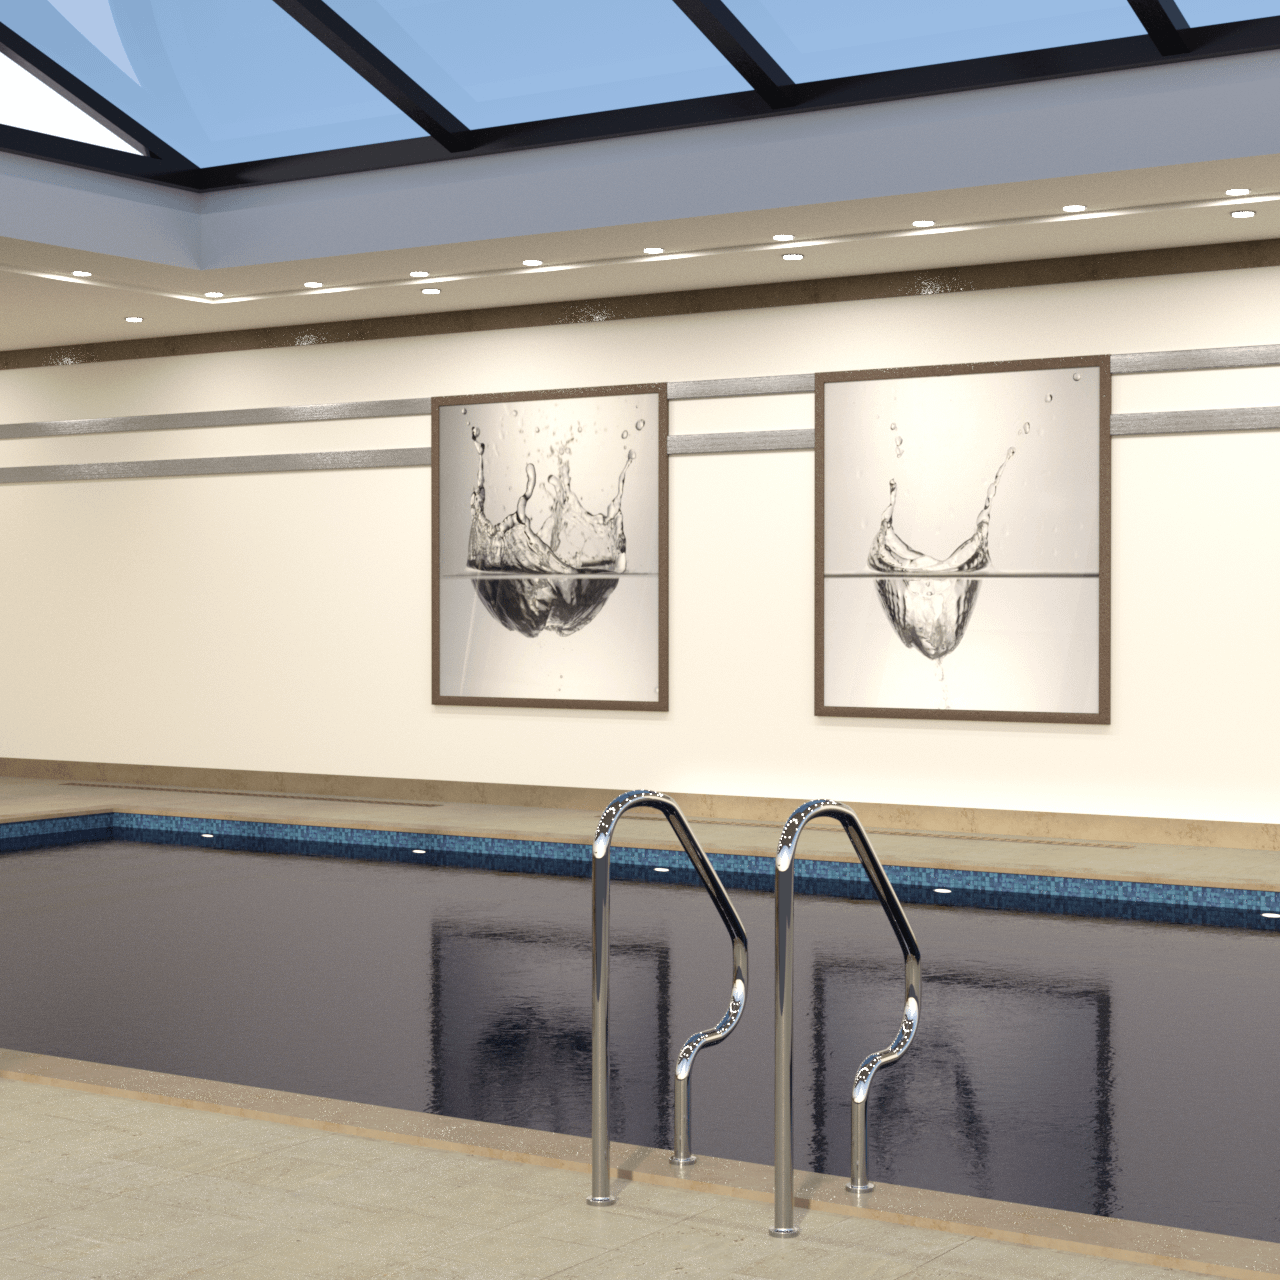 Pool entrance with background showing also two paintings and a glass roof